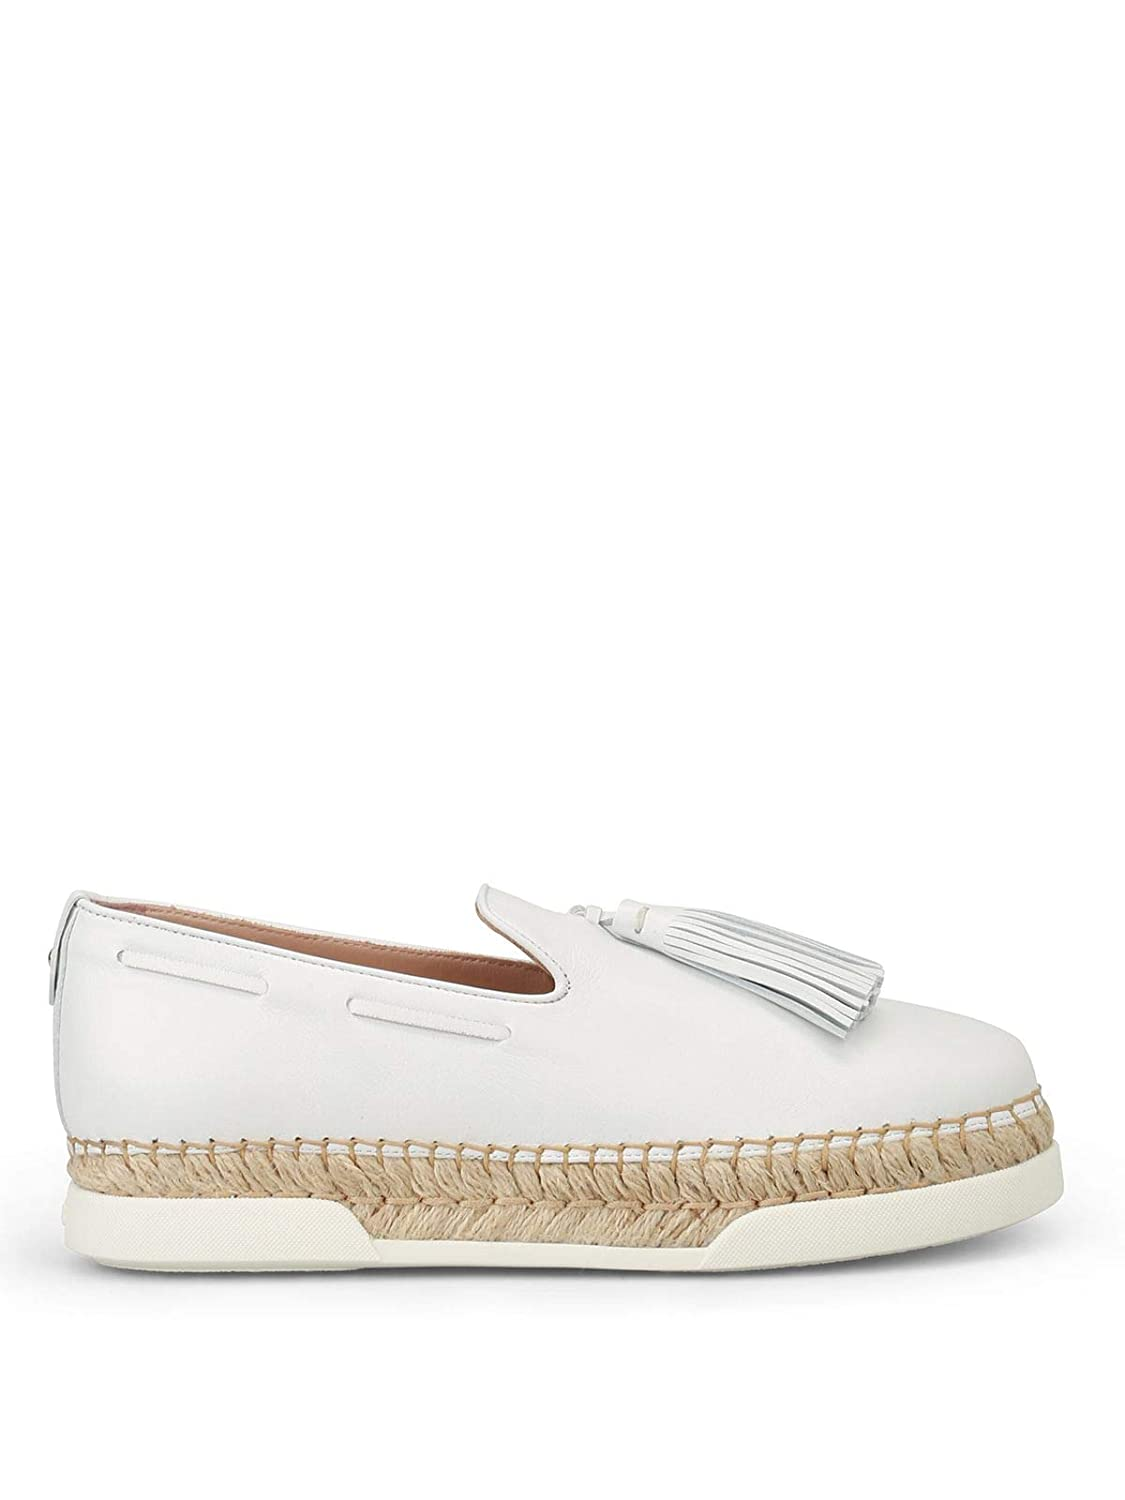 - Tod's Women's XXW96A0Y451JUSB001 White Leather Slip On Sneakers